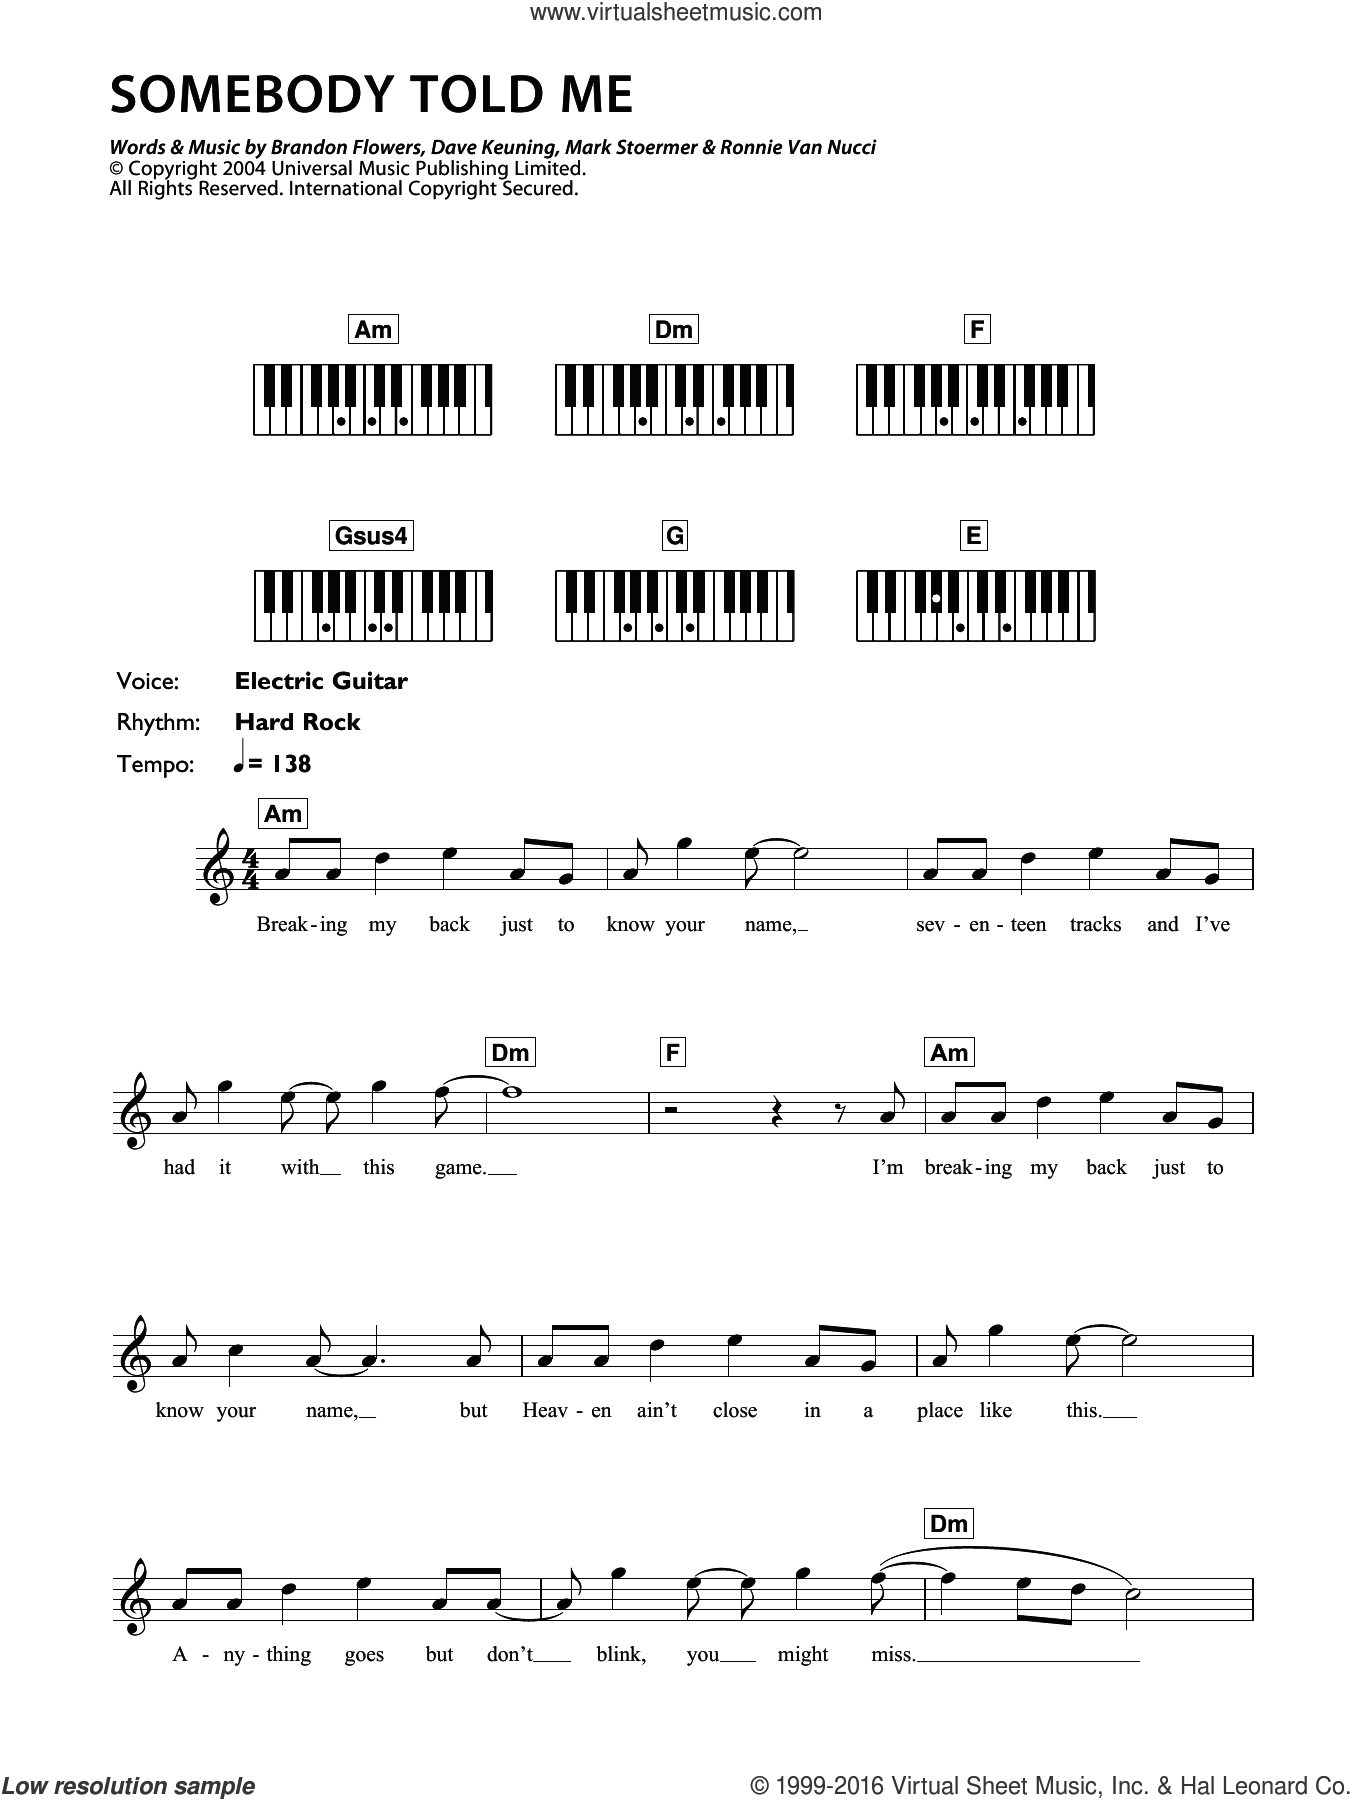 Somebody Told Me sheet music for piano solo (chords, lyrics, melody) by Ronnie Vannucci, The Killers, Brandon Flowers, Dave Keuning and Mark Stoermer. Score Image Preview.